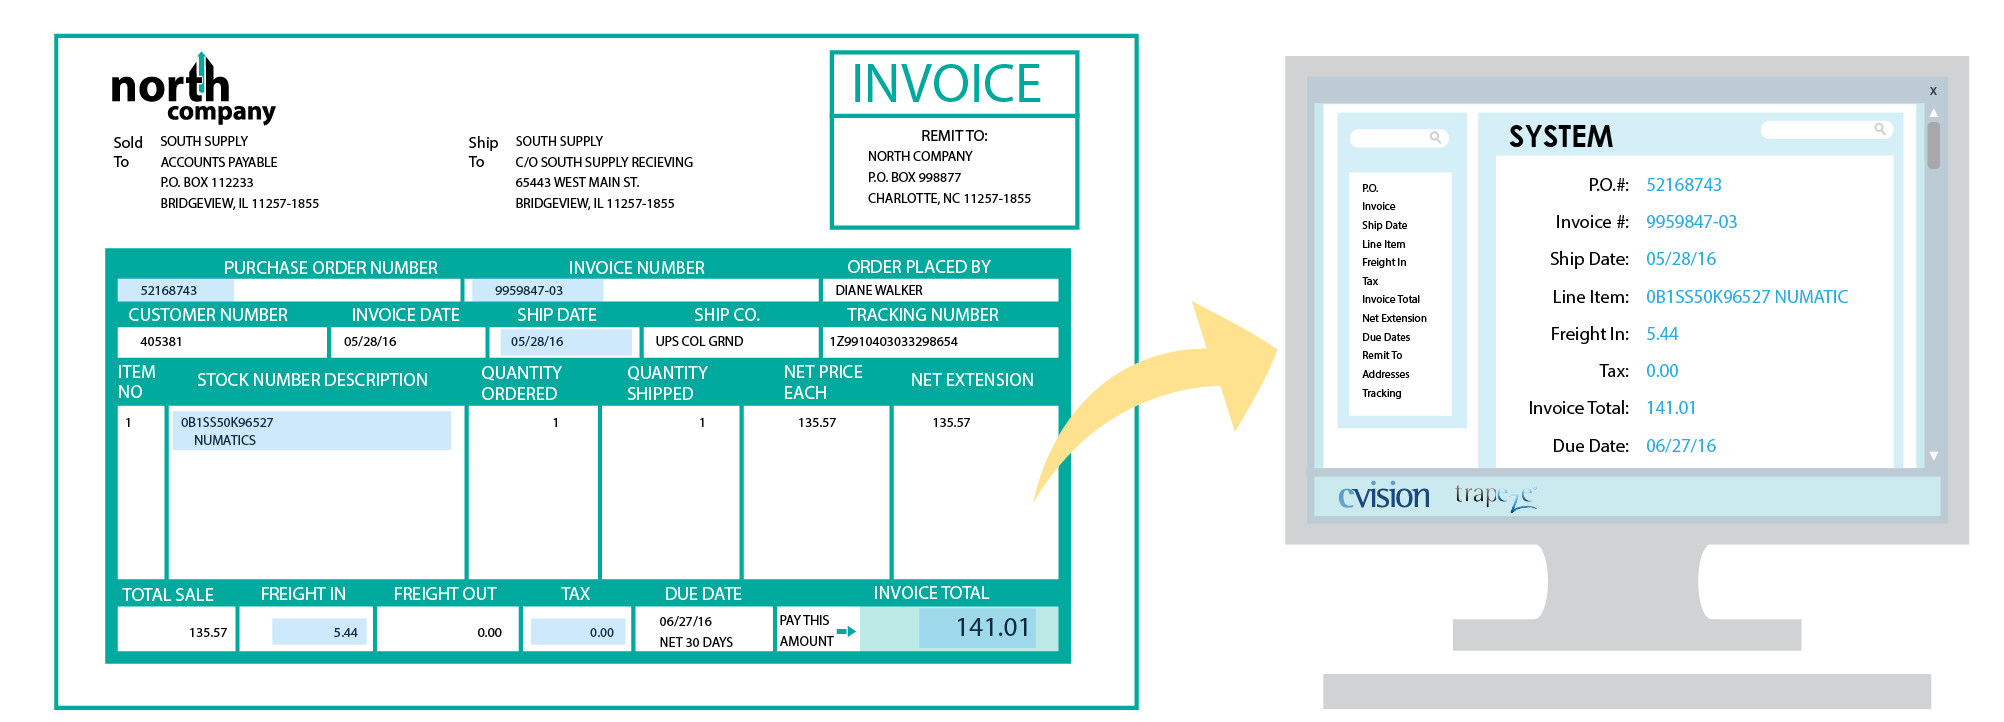 Cxml Invoice Word Sales Invoice Processing  Cvision Technologies Aliexpress Print Invoice with Blank Sales Receipt Template  Invoices Into Scanned Images And Further Into Text Format Ocr Files Bpa In Receipts Pdf